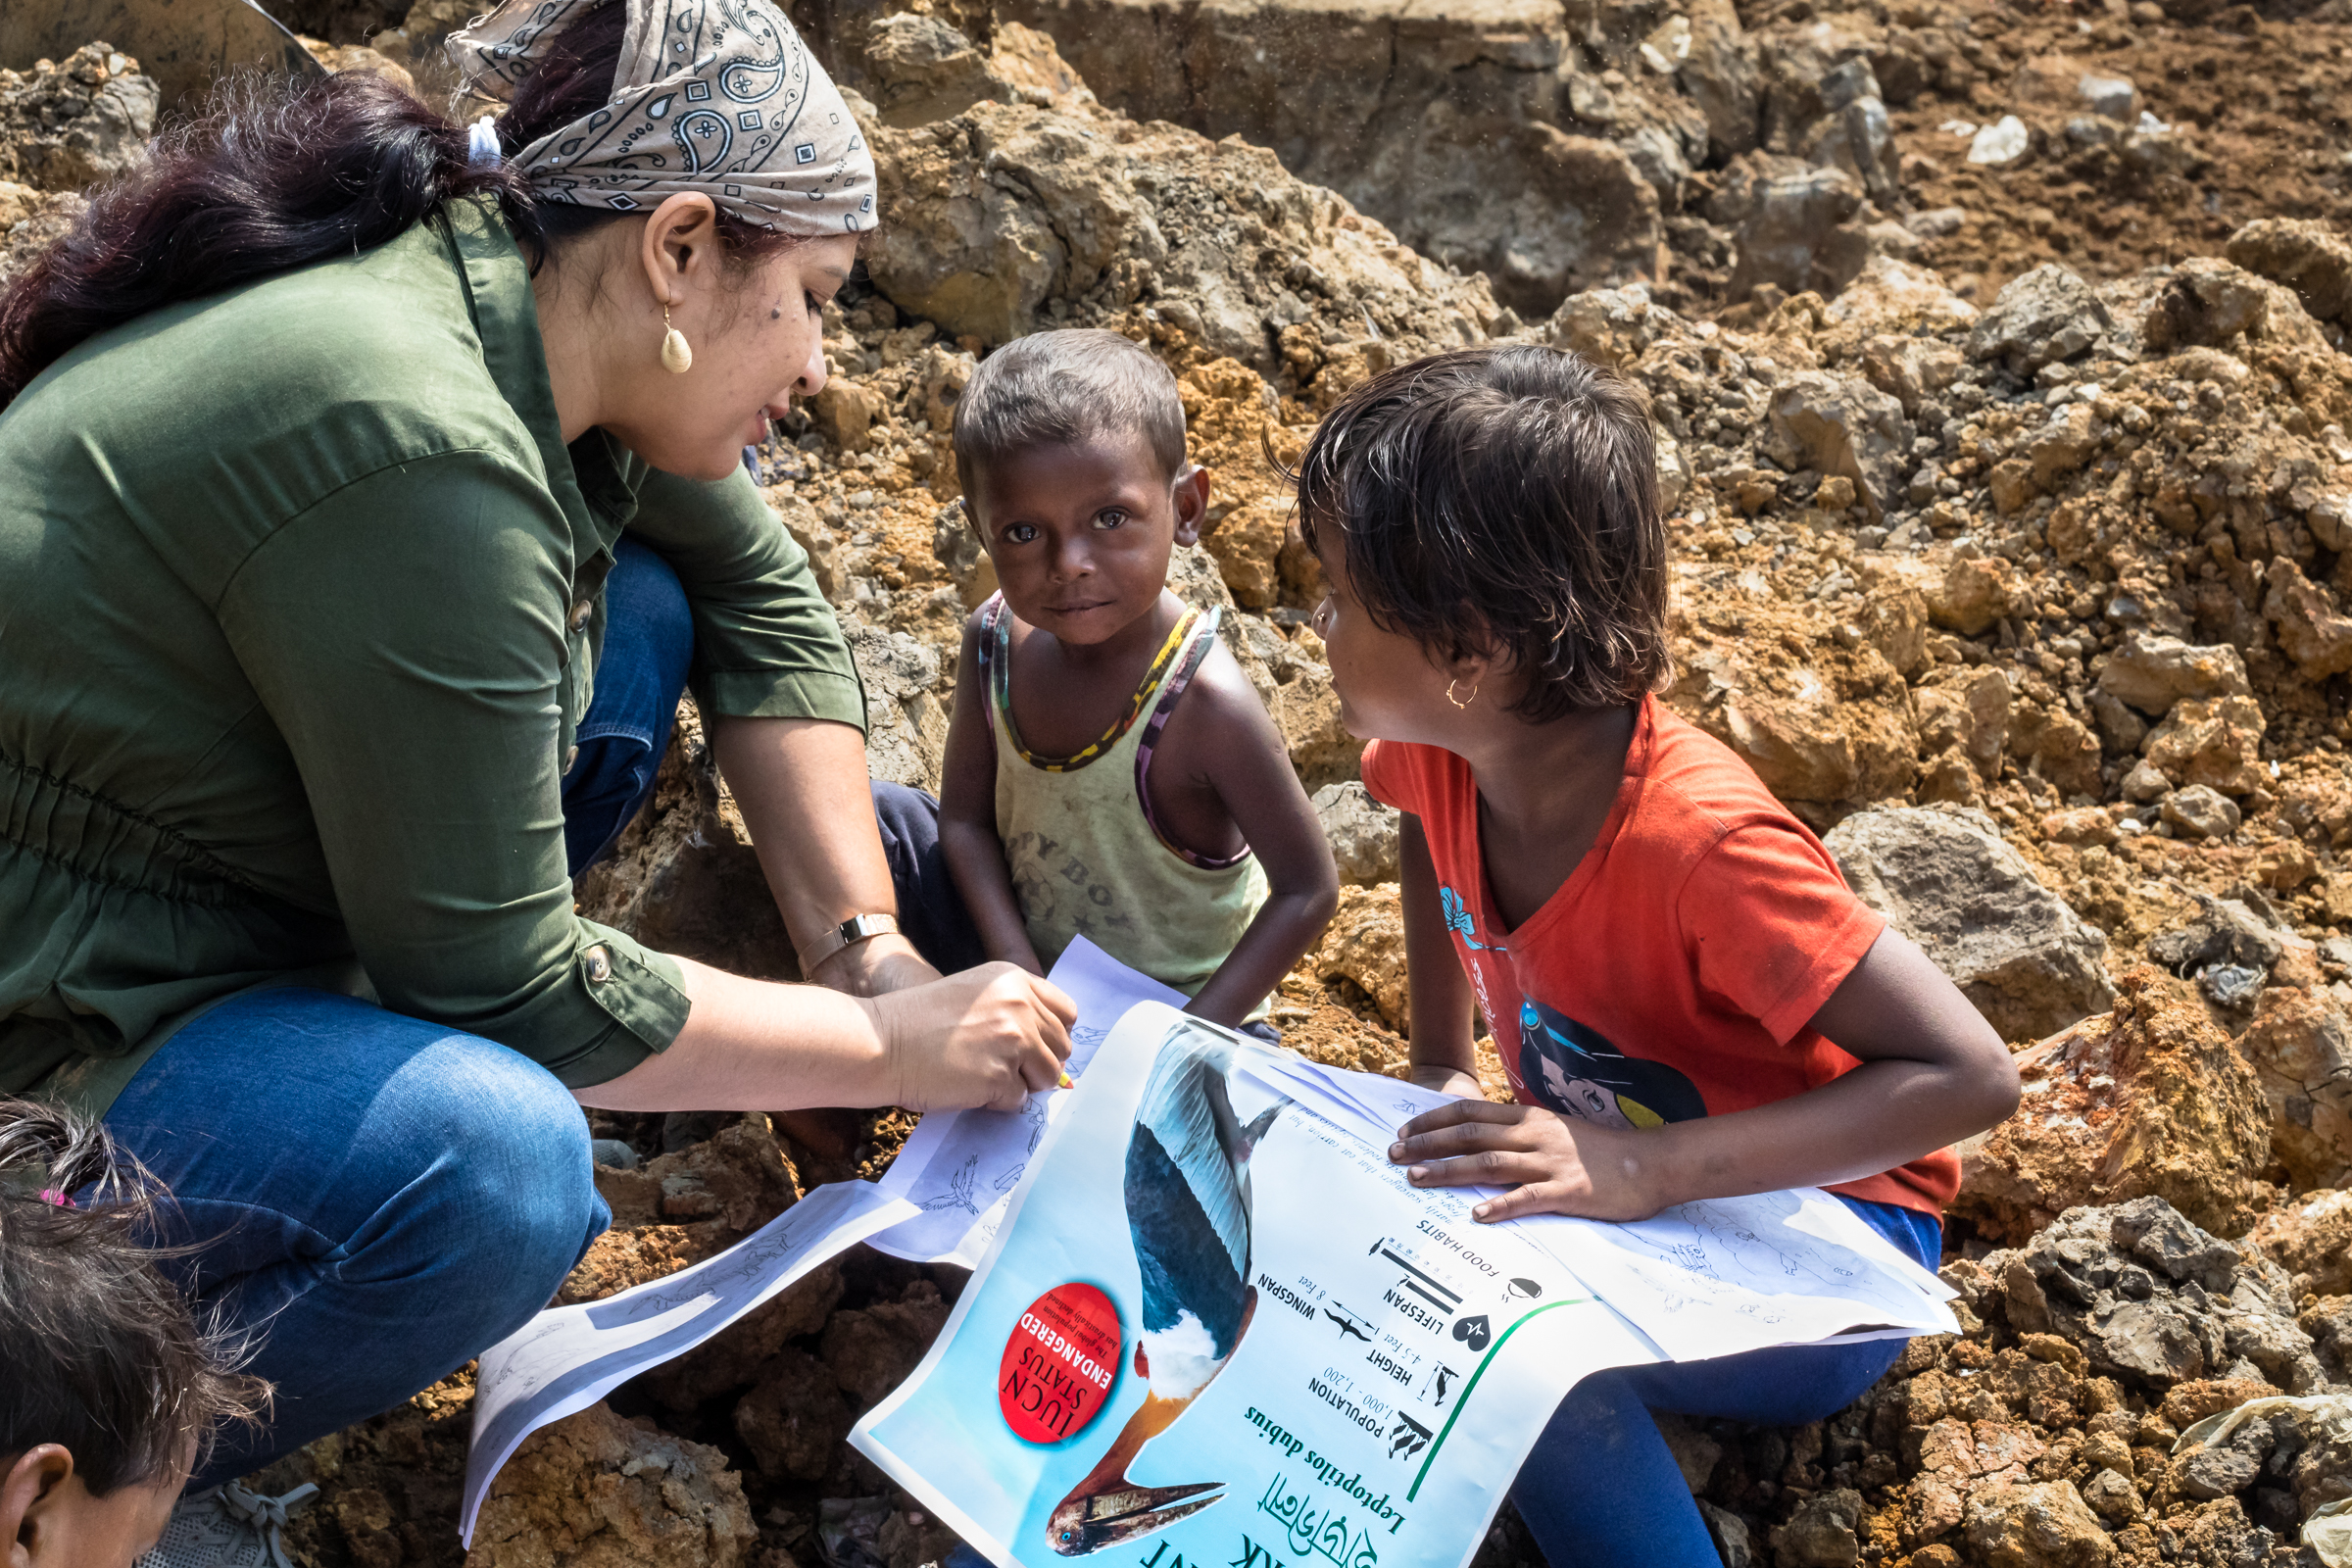 Purnima Devi Barman presents informational posters, coloring pages, and food to the people living and working in the sprawling landfill with the goal of raising awareness for the greater adjutants.